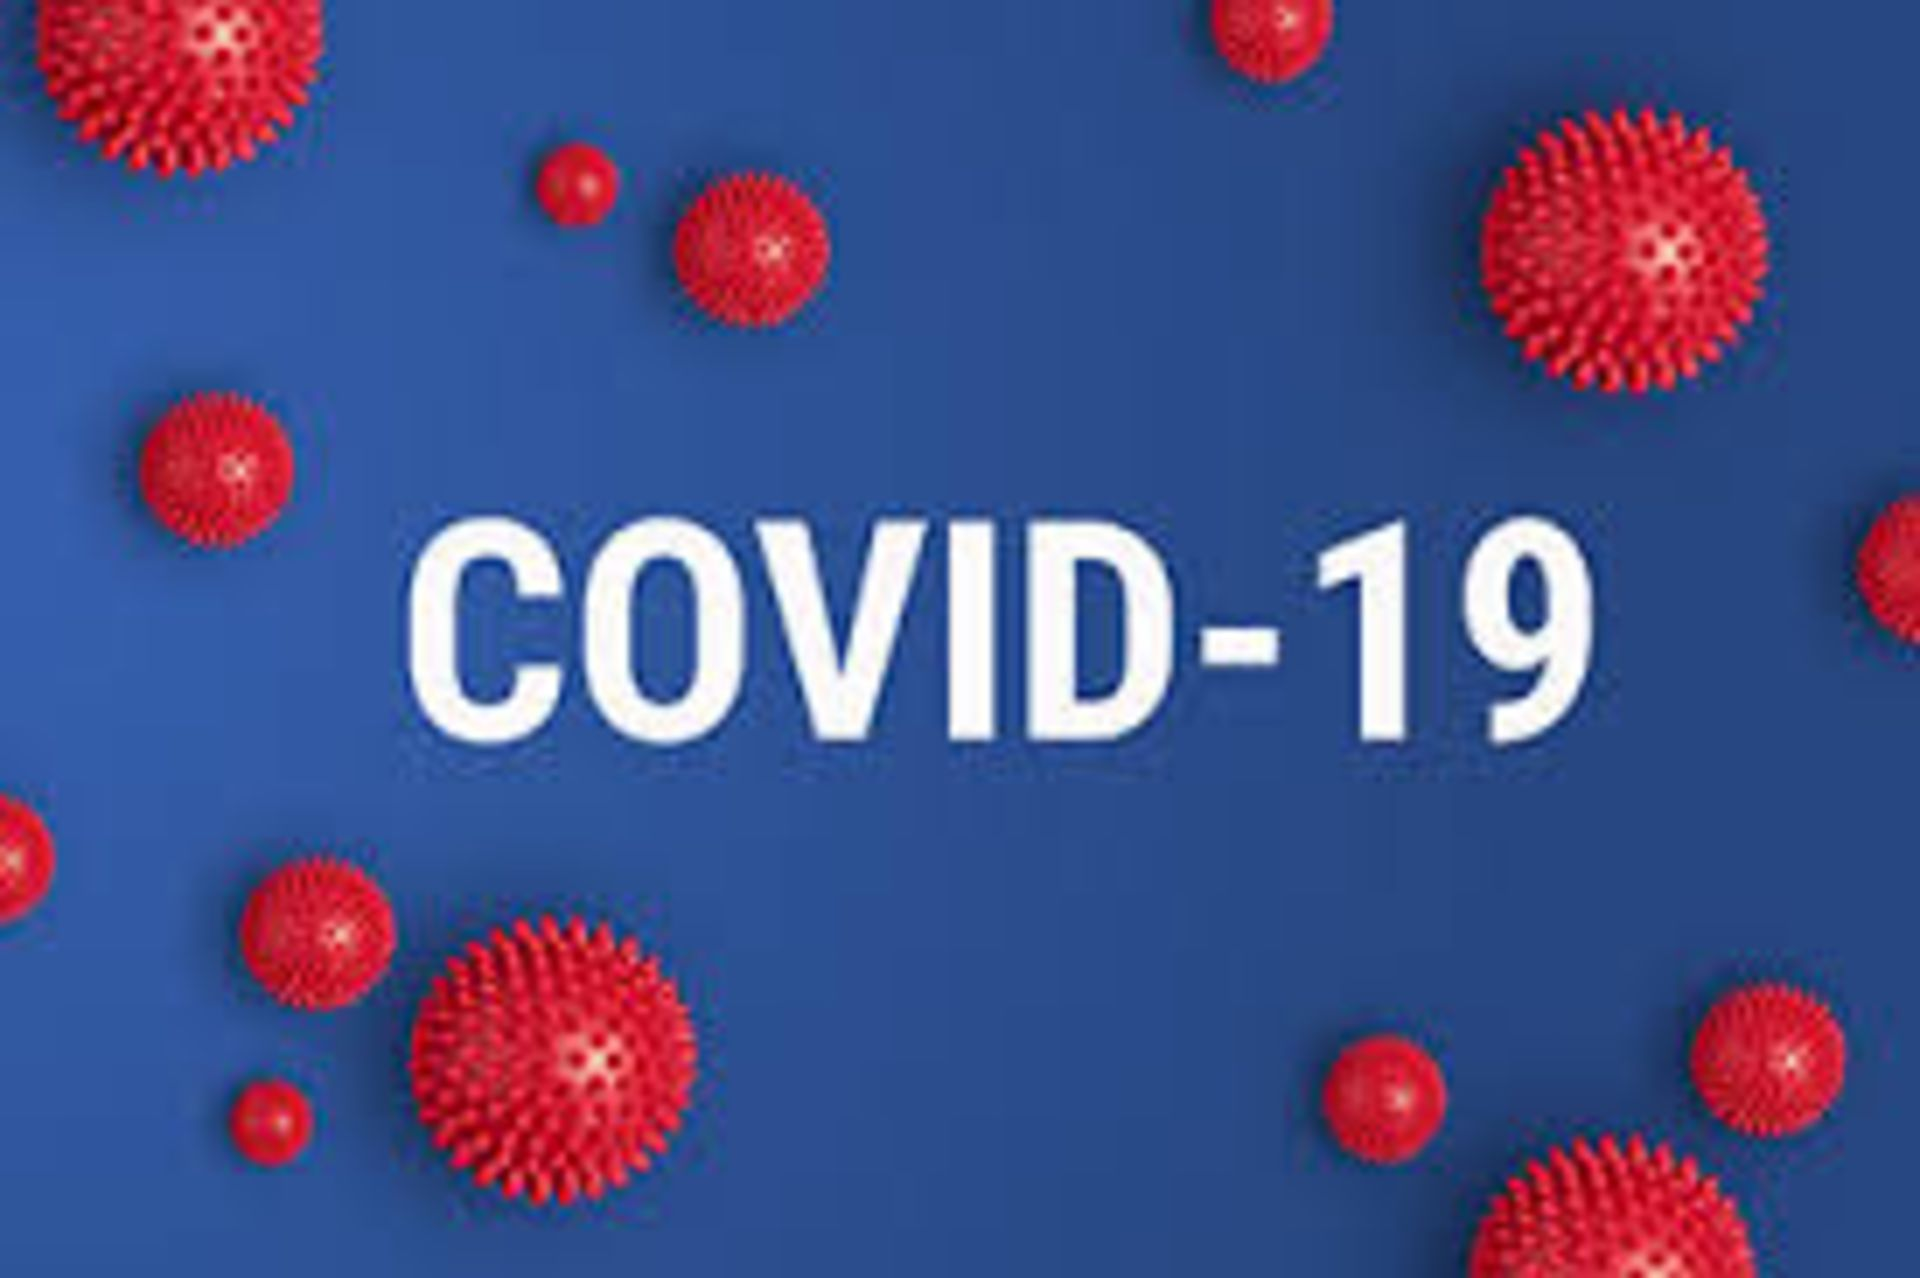 Lot 0 - IMPORTANT INFORMATION - COVID-19 - INFORMATIONS IMPORTANTES